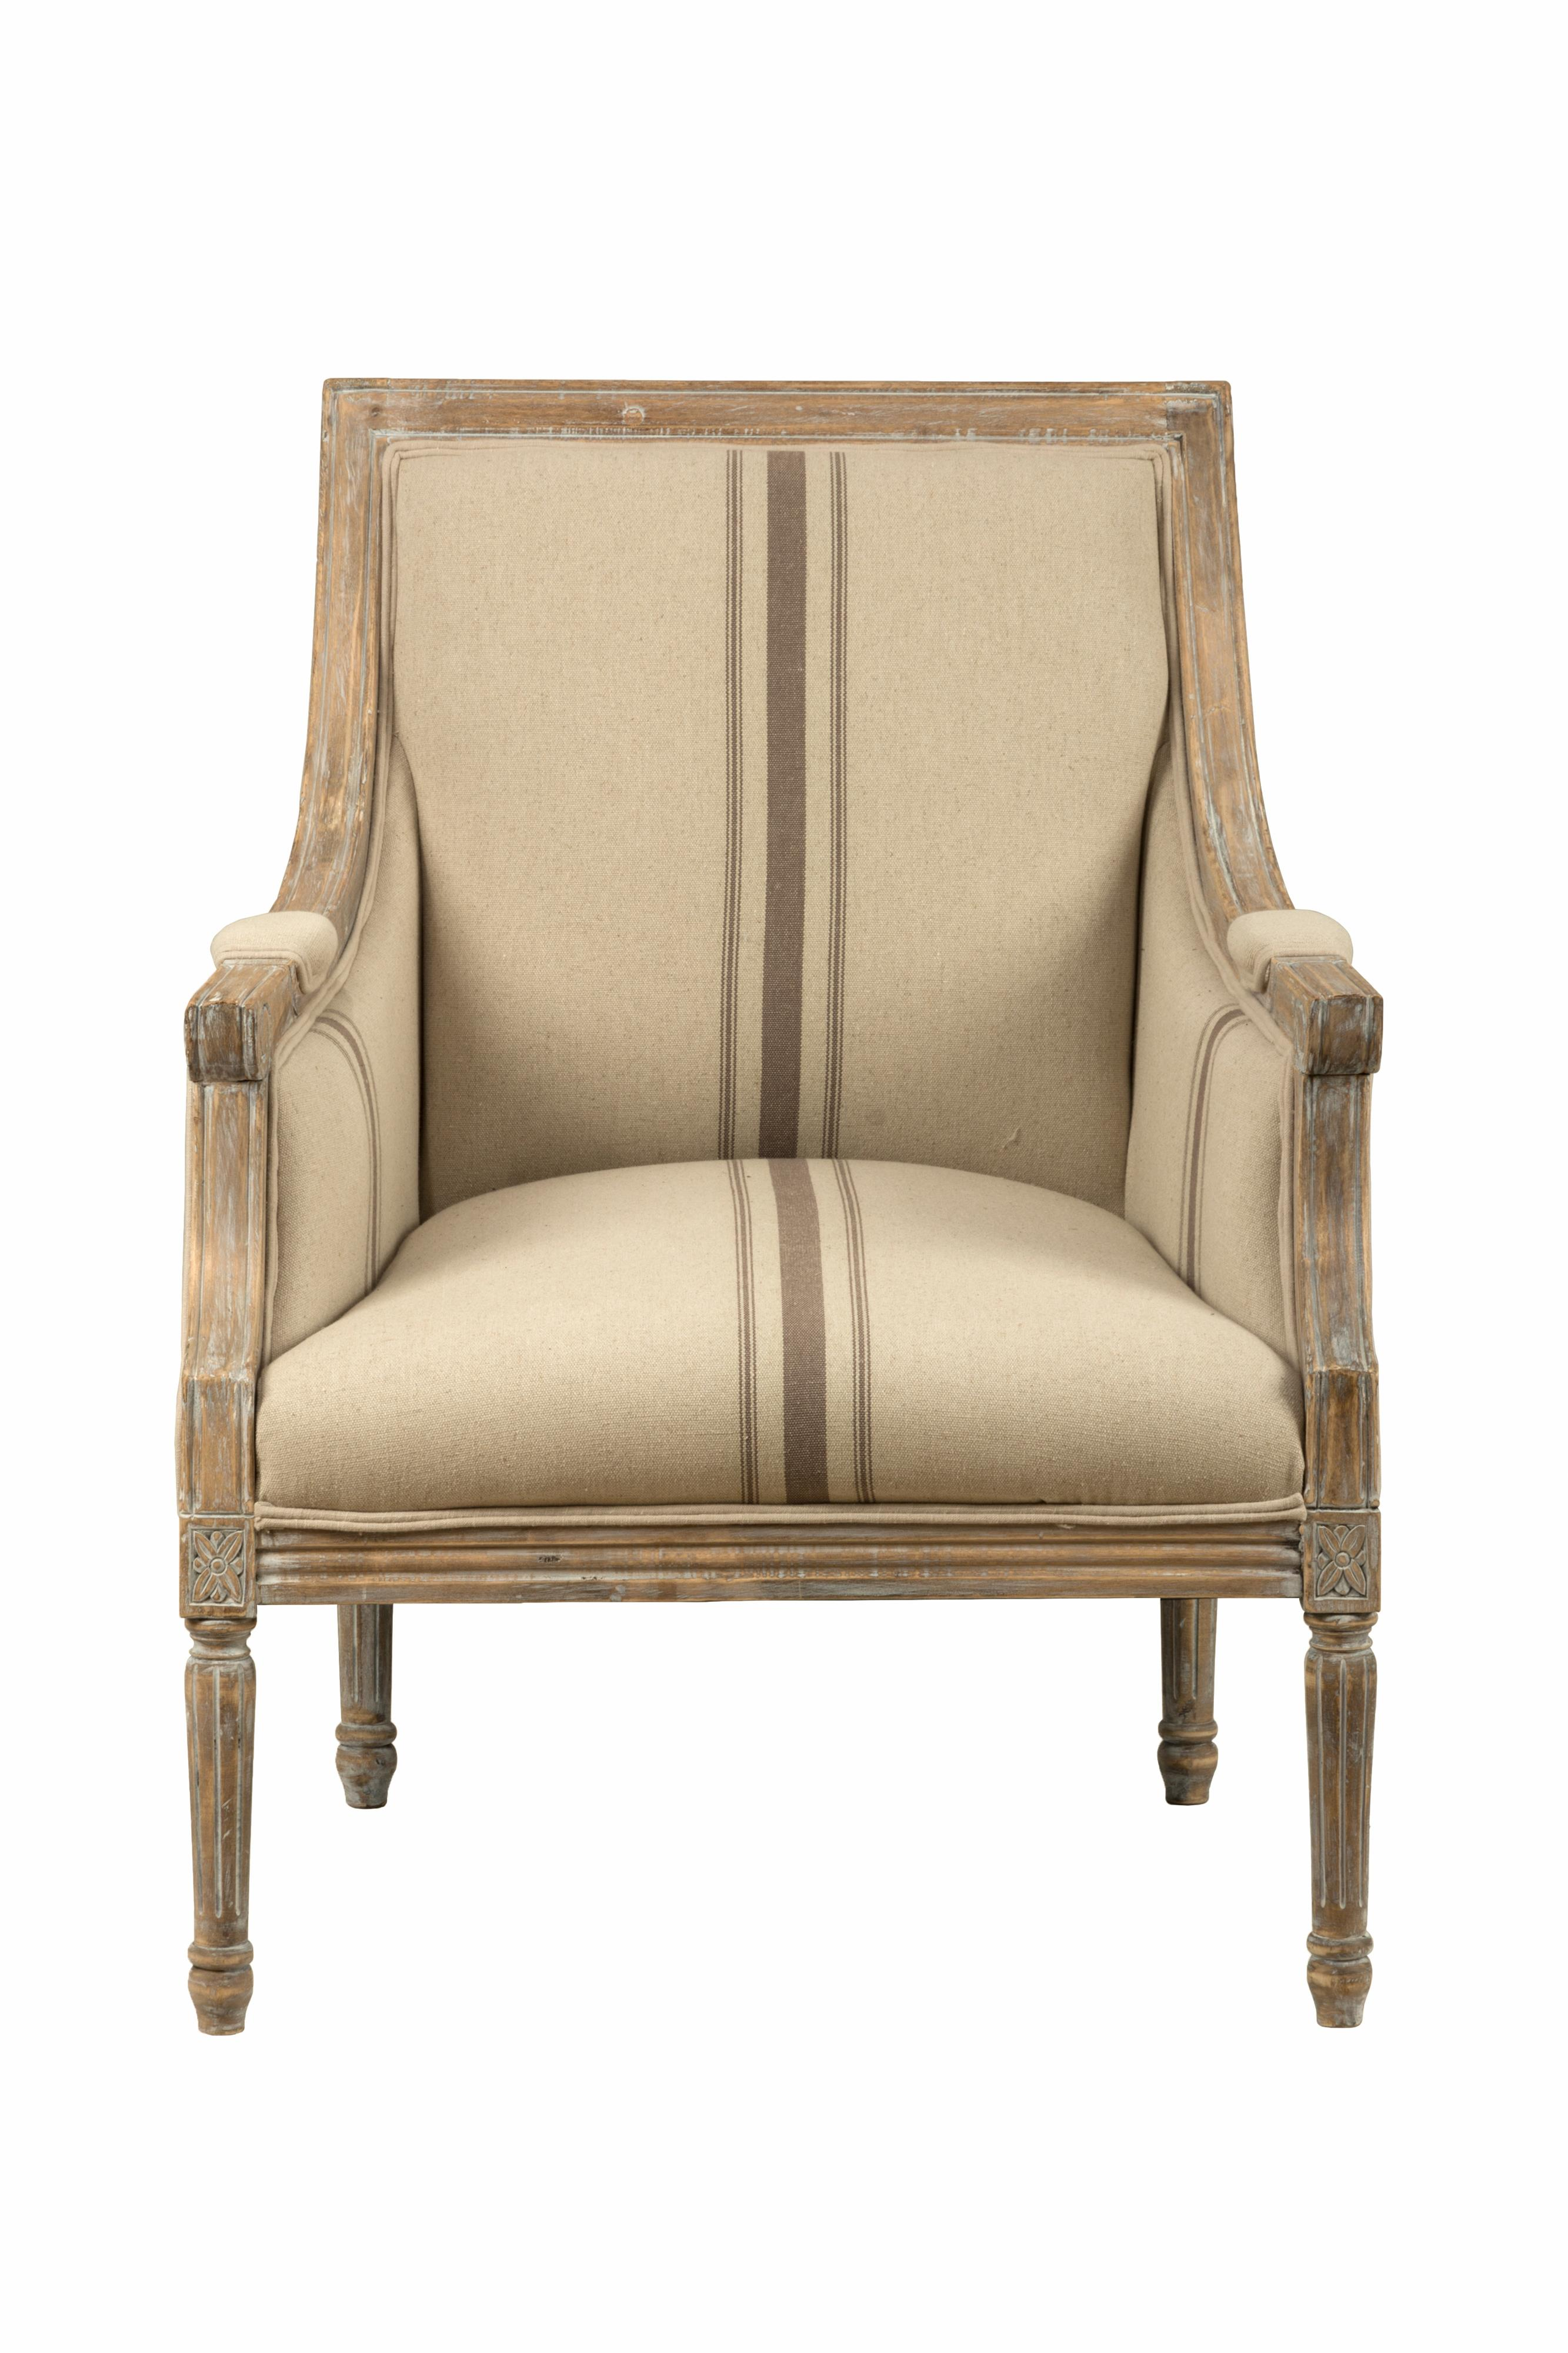 target accent chair room essentials tub slipcovers for sale belfort easy living mckenna